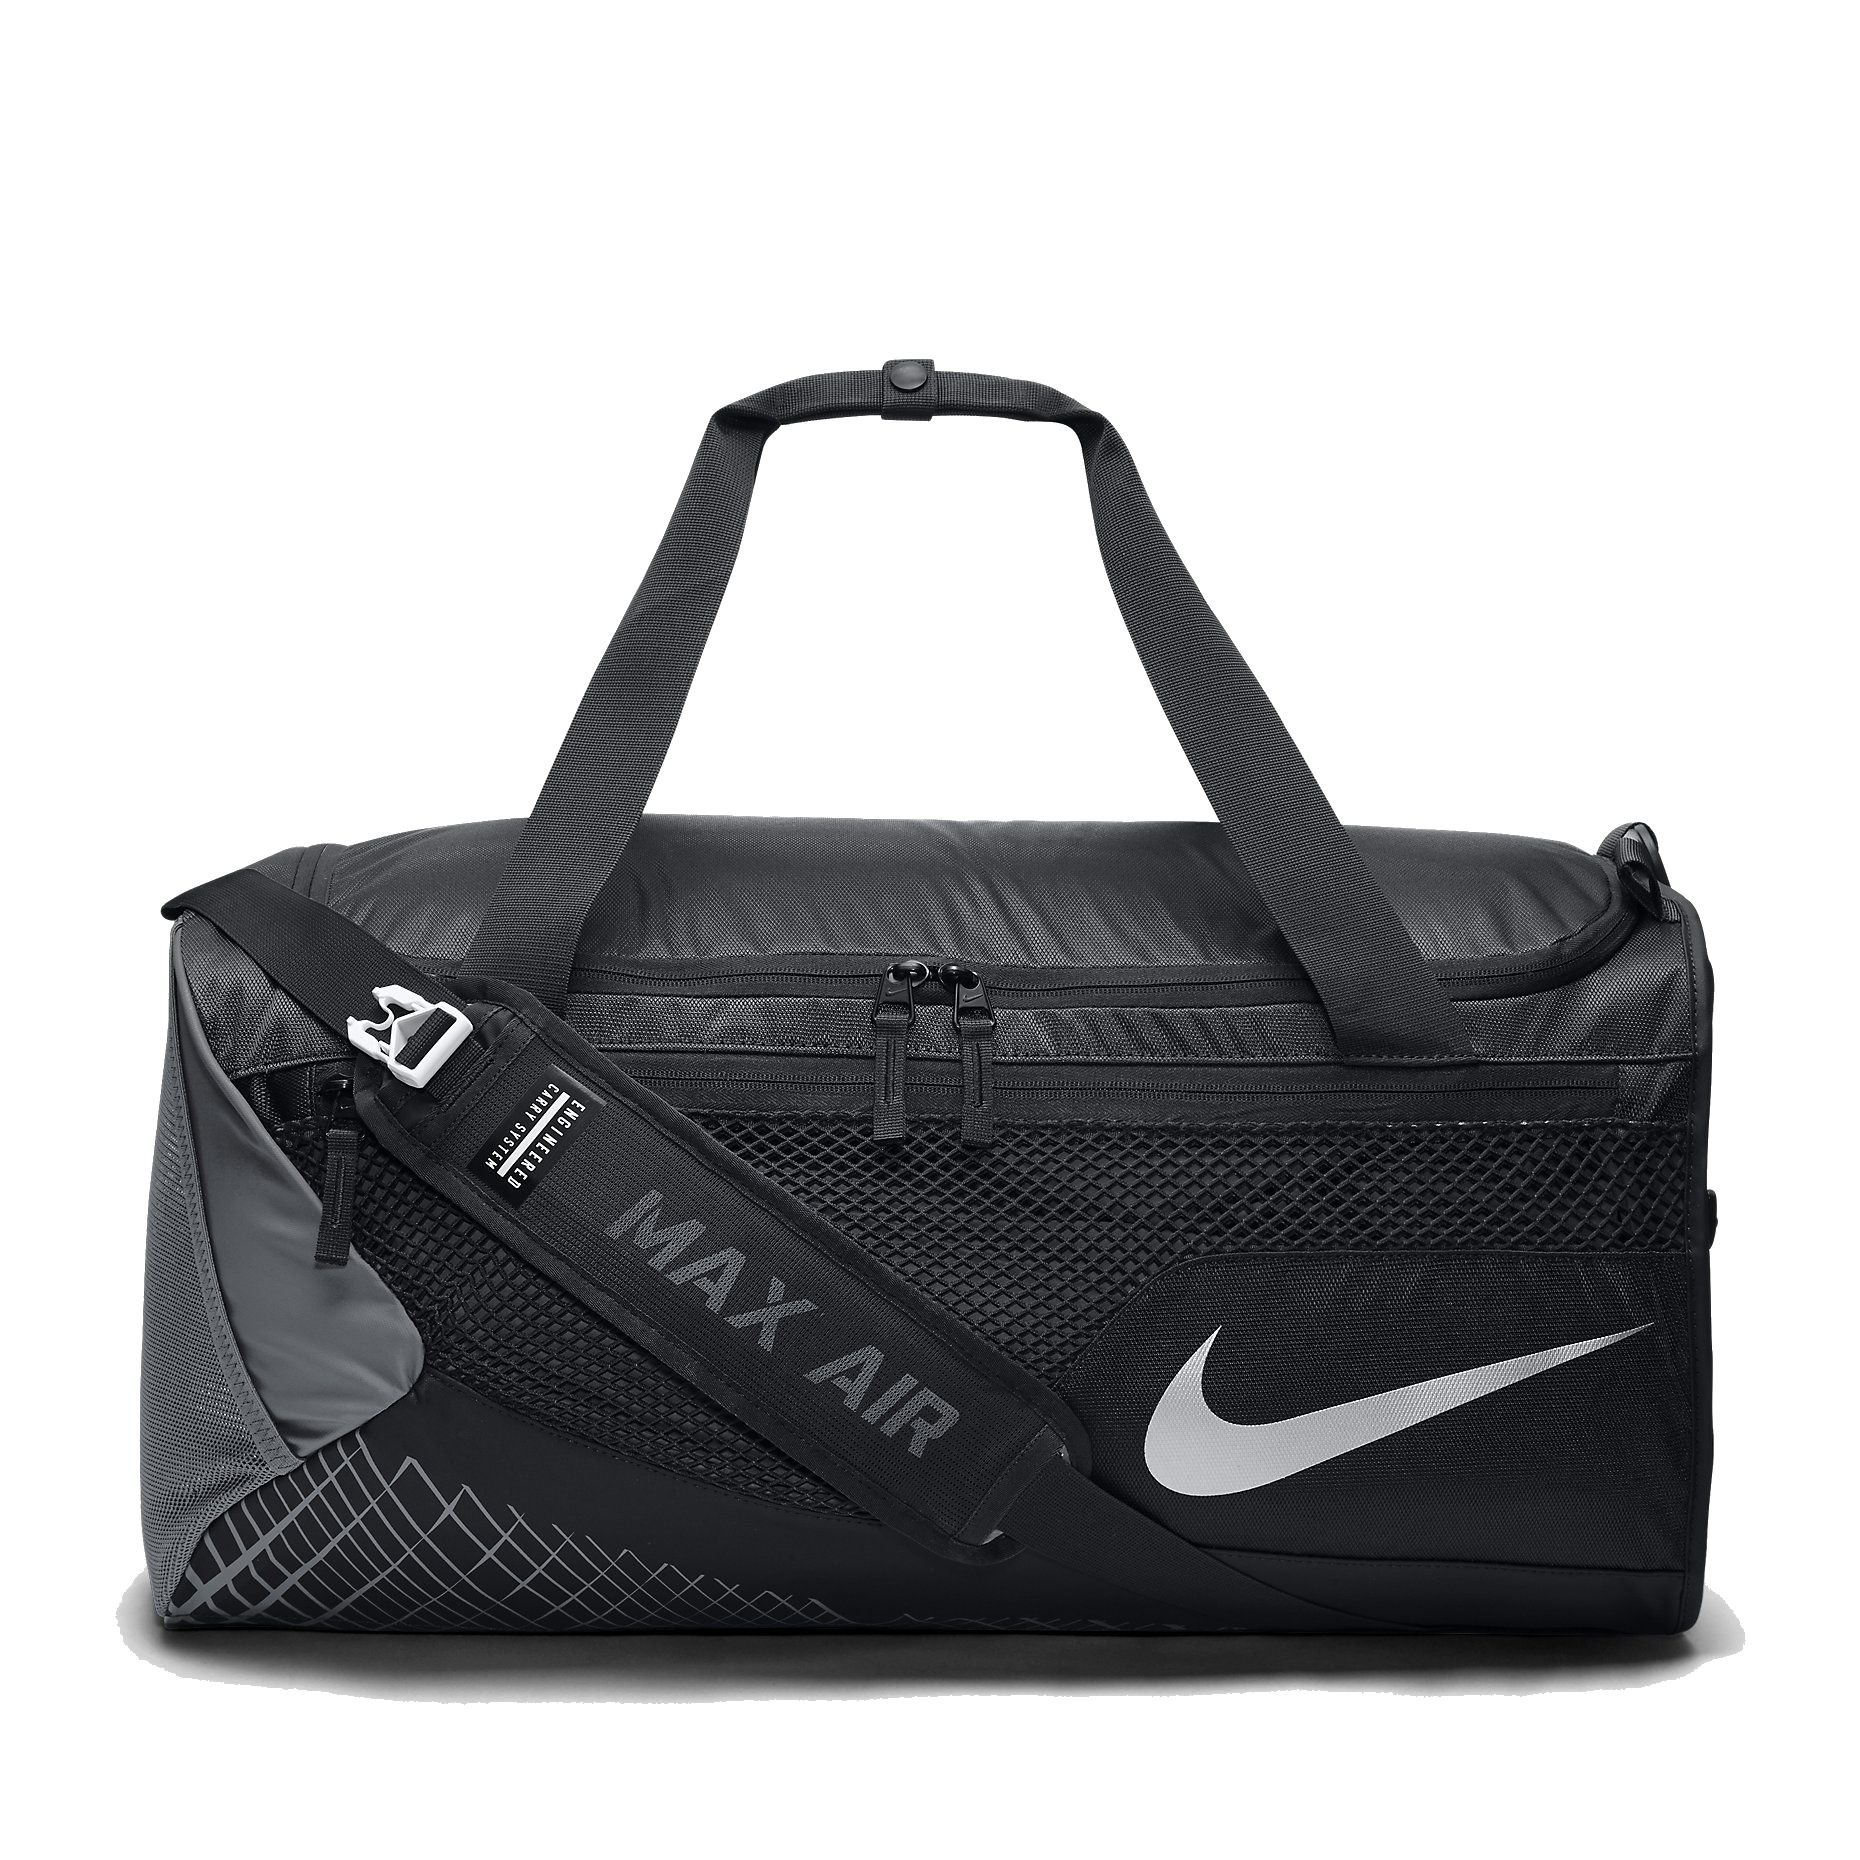 e082c63043 Galleon - Nike Mens NK VPR MAX AIR M DUFFEL BAG BA5475-060 -  ANTHRACITE COOL GREY METALLIC SILVER